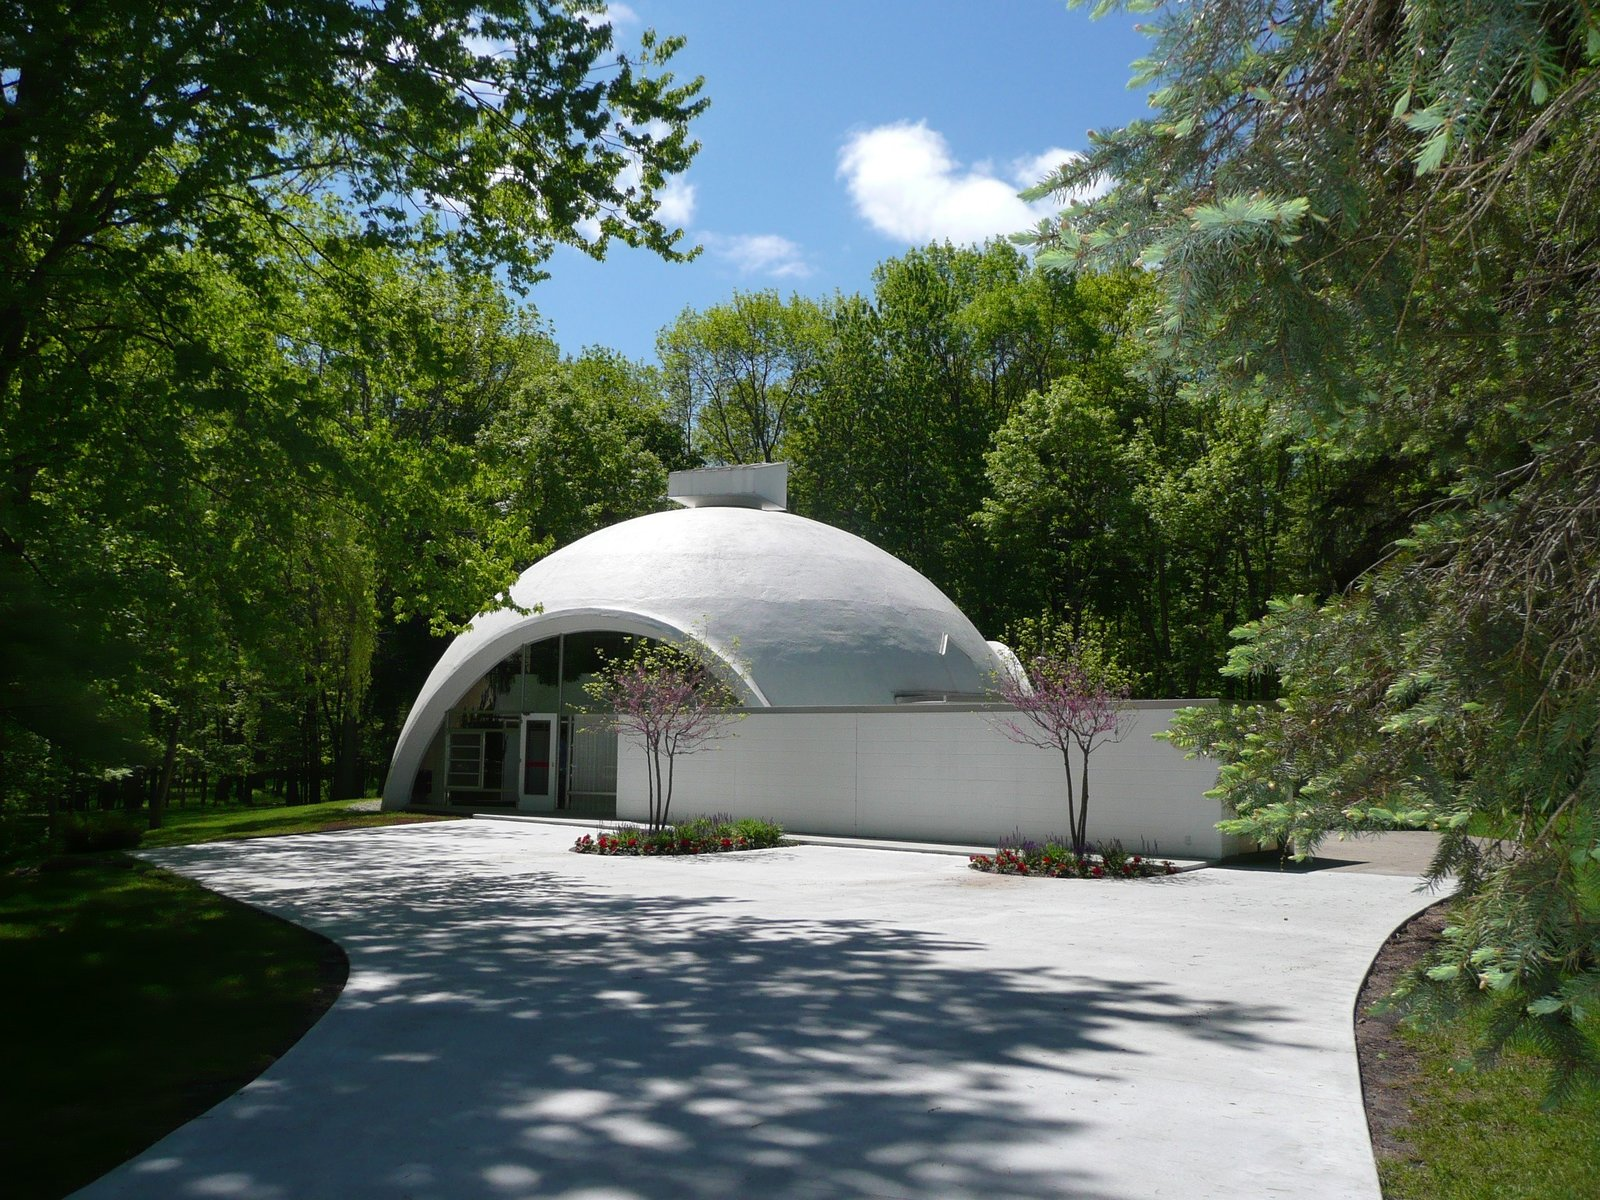 The Robert E. Schwartz House, designed by Robert Schwartz and nestled in Northwest Midland, features a dramatic concrete and styrofoam dome constructed with Dow Chemical technology.  Photo 4 of 5 in Defining an Architectural Canon From the Ground Up